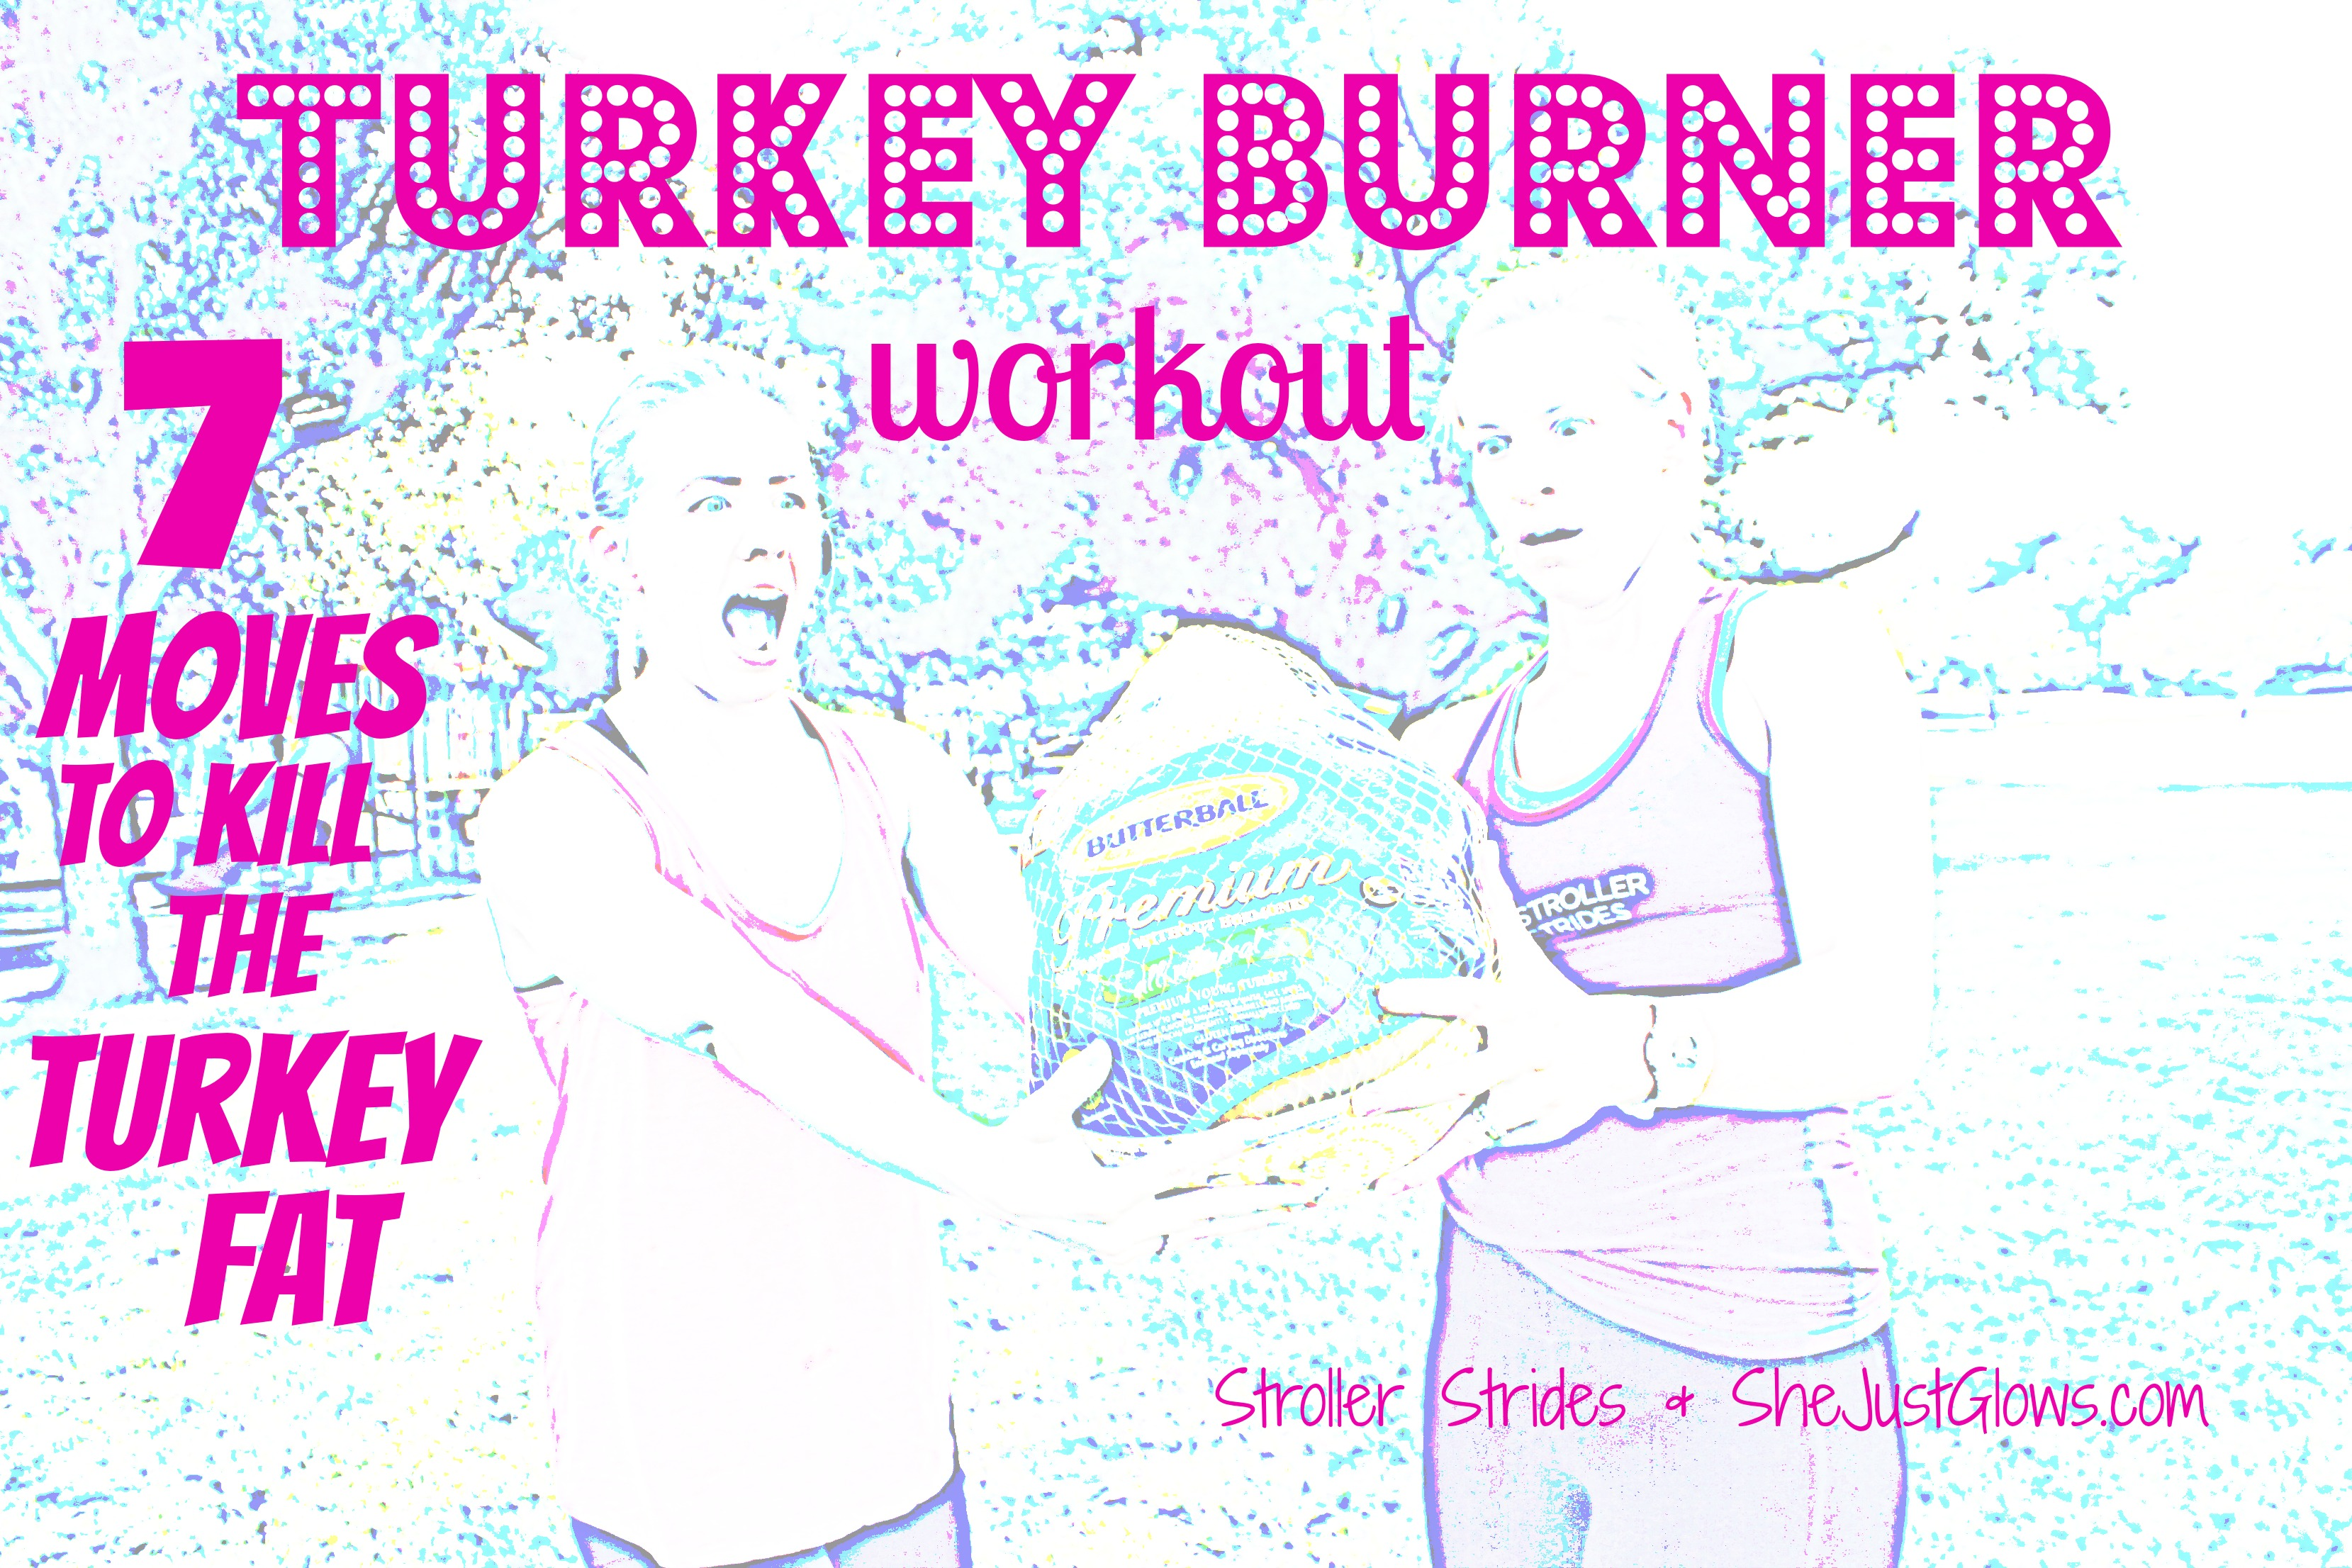 Top 7 Moves to Burn the Turkey Fat! SheJustGlows.com